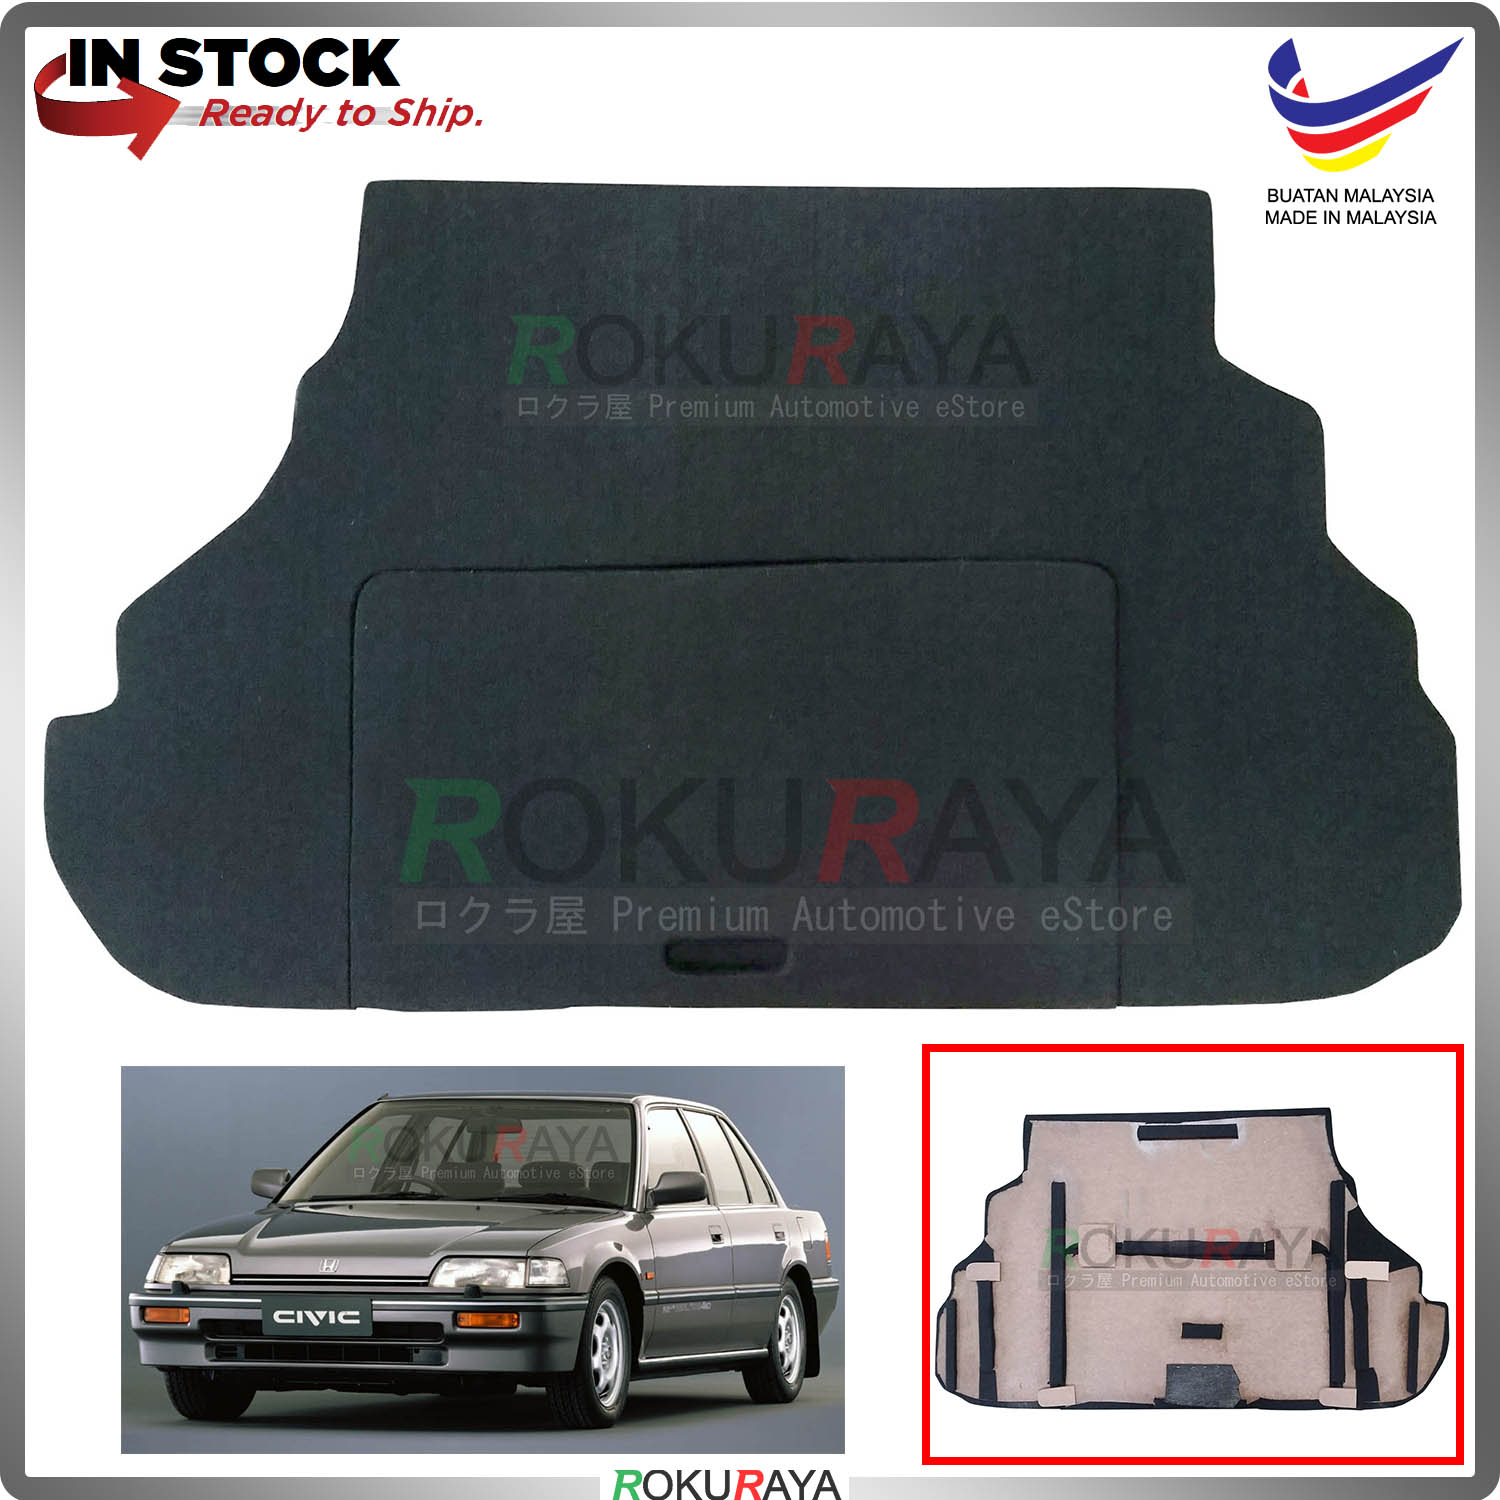 Honda Civic EX SH4 Custom Fit Rear Bonnet Spare Tyre Cover Board Carpe